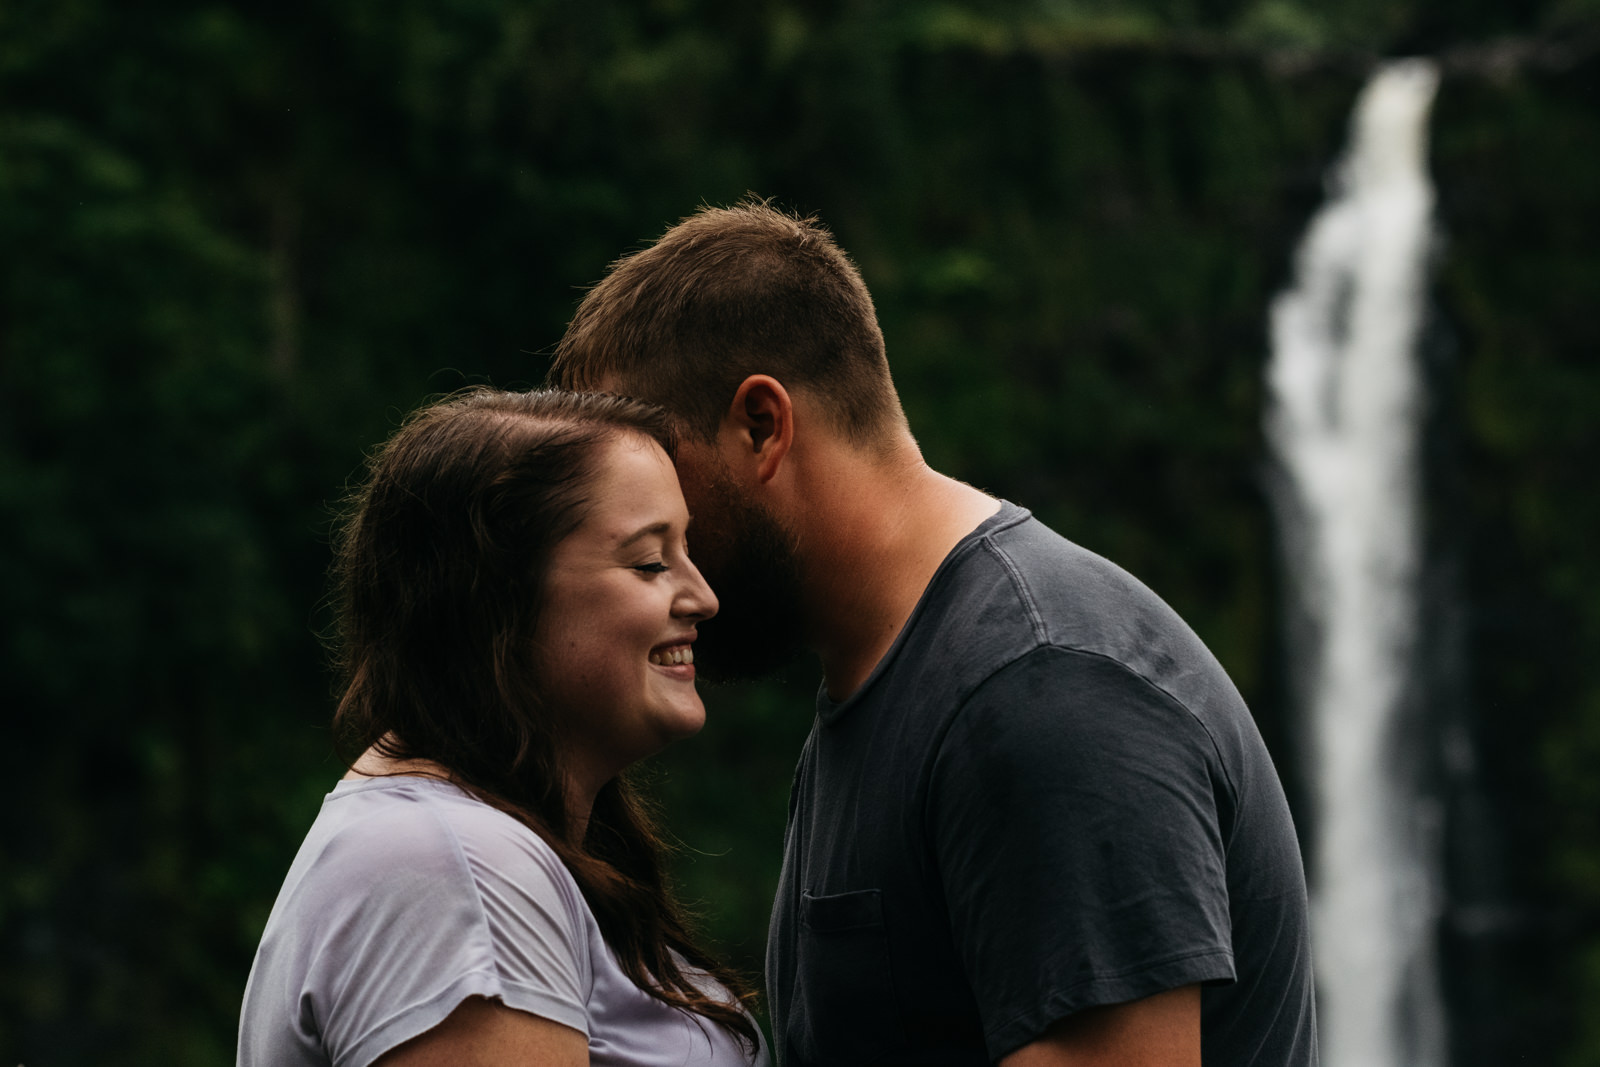 Intimate engagement photos near a waterfall in Kailua-Kona, Hawaii.